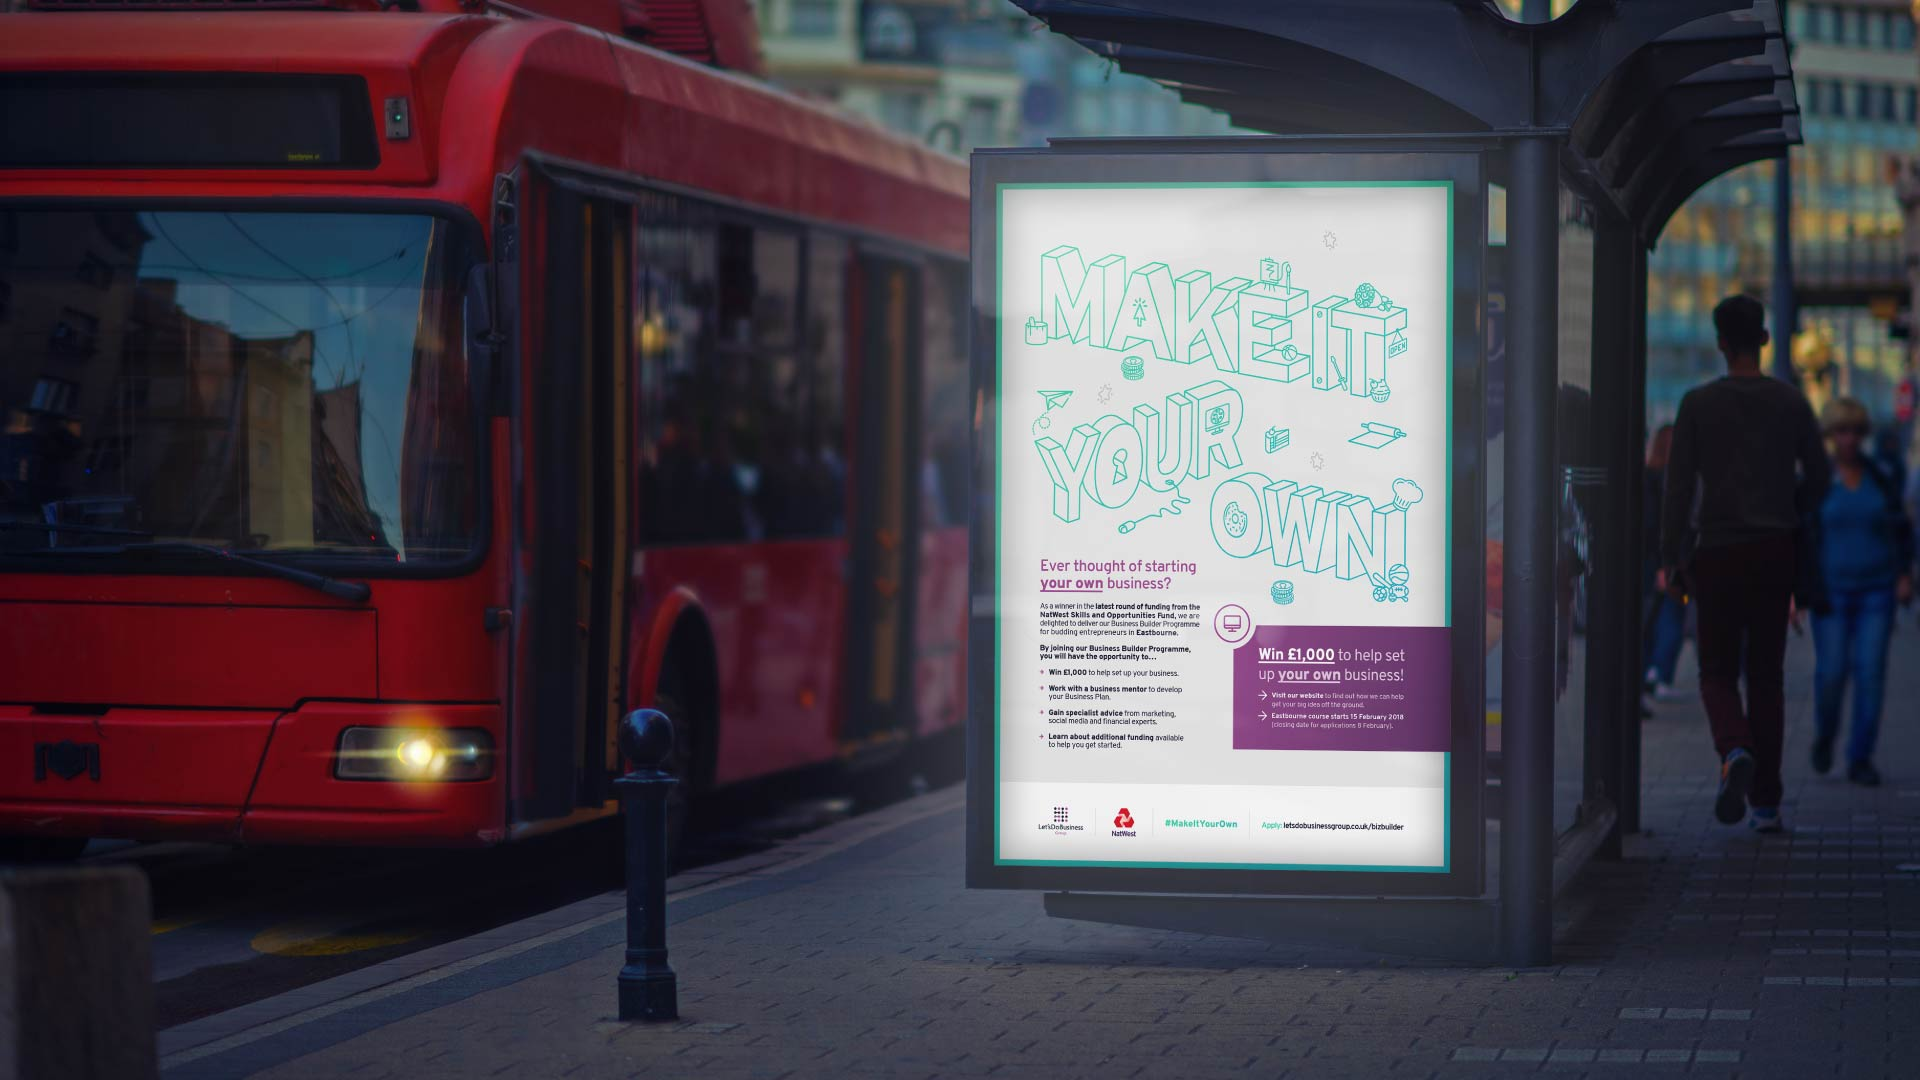 Large graphic advertisement for Make It Your Ow brand campaign.